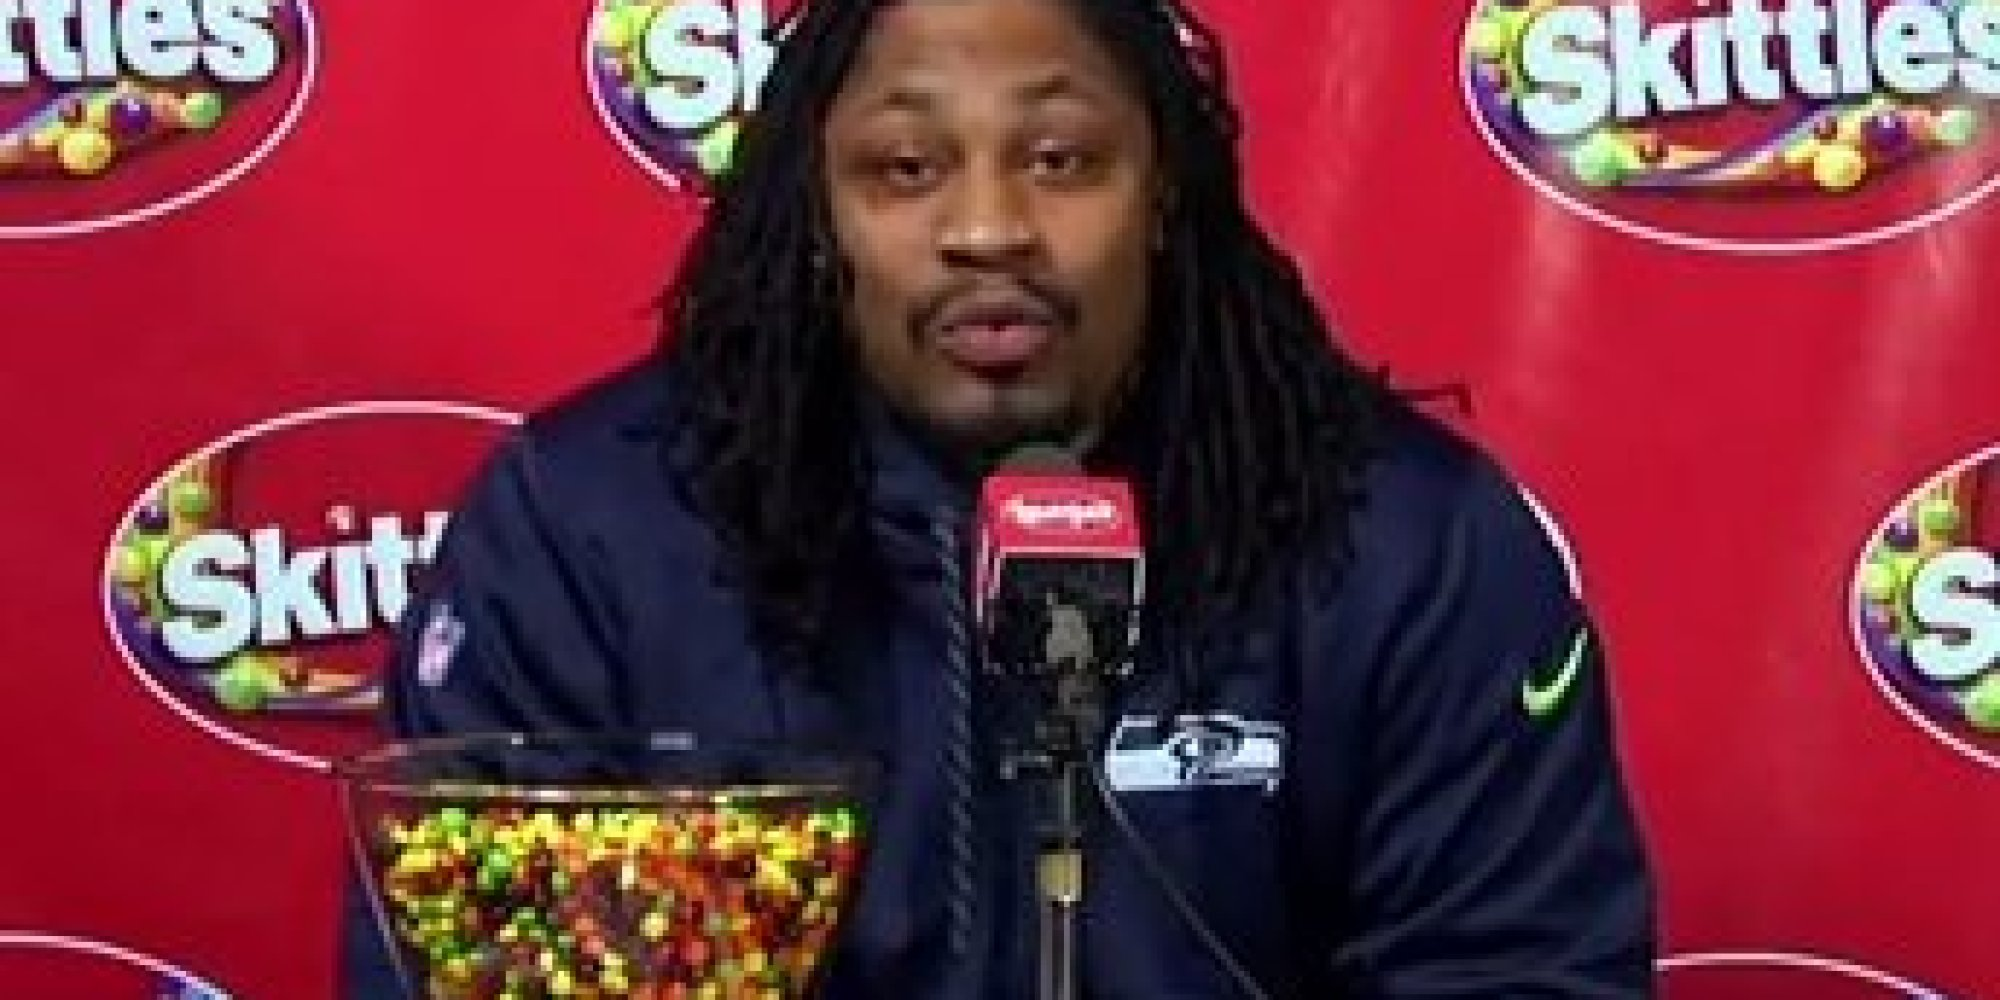 Marshawn Lynch, a former NFL football running back with the Seattle  Seahawks, traveled to